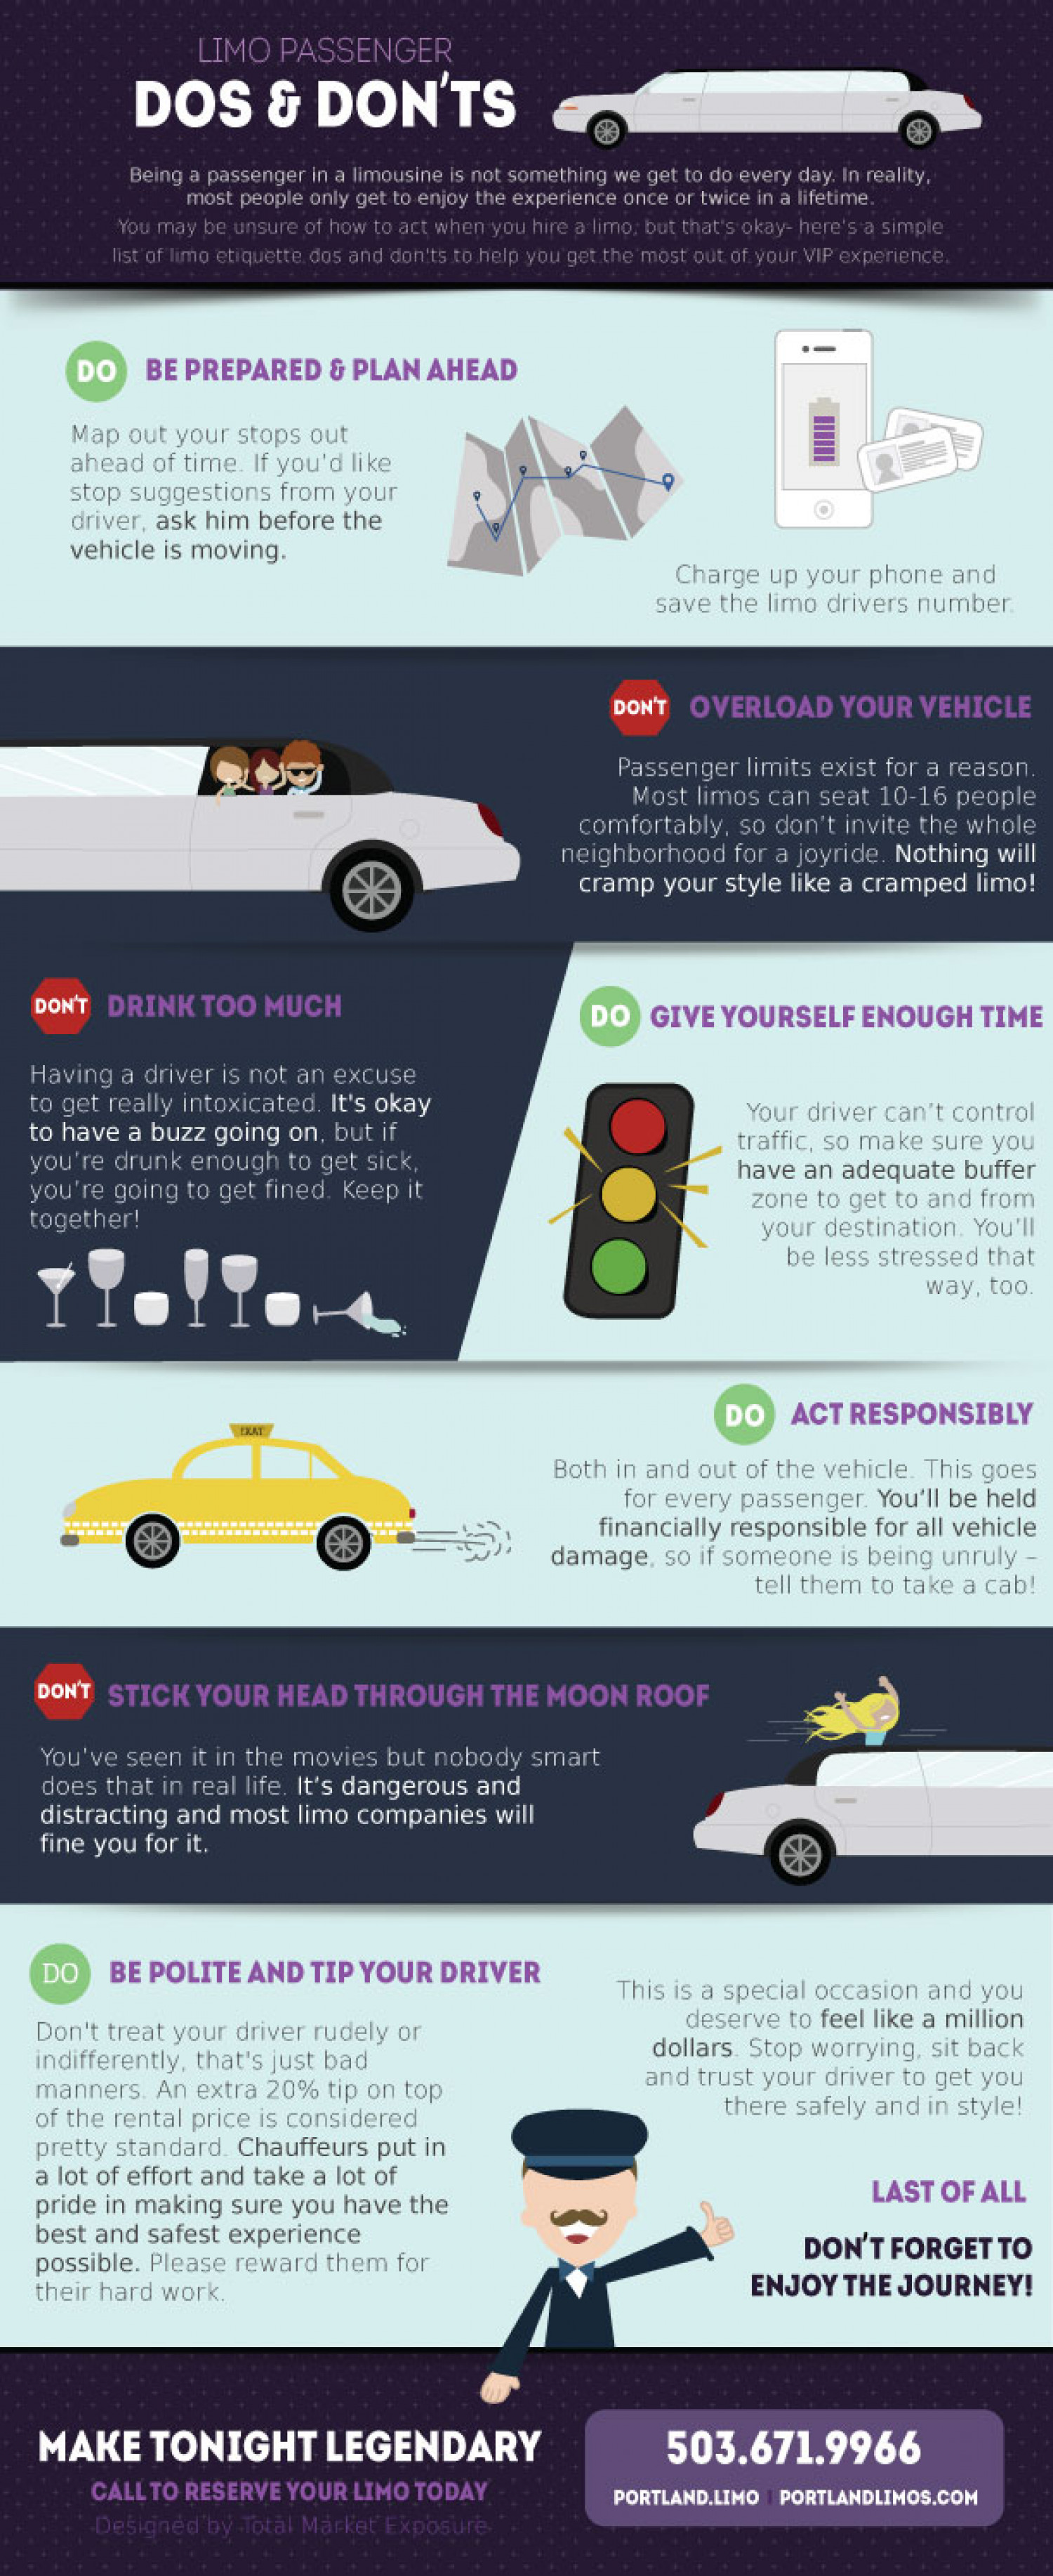 Limousine Do's and Dont's Infographic